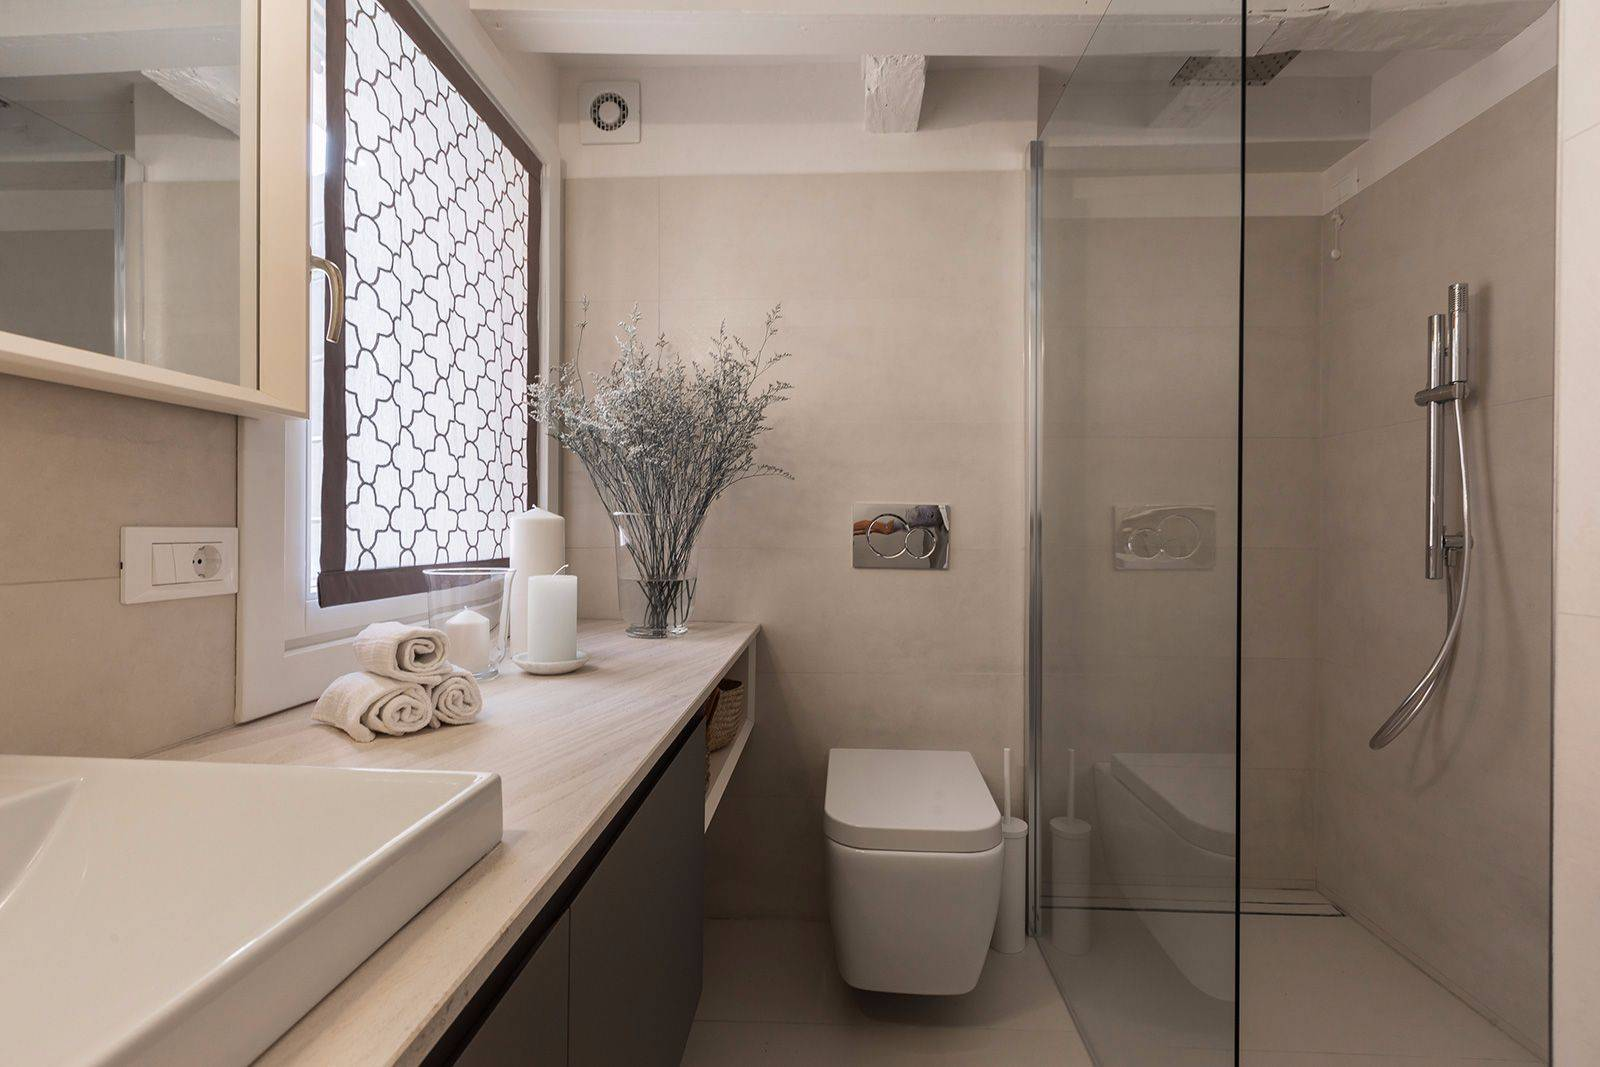 the stylish bathroom will please the most demanding guest